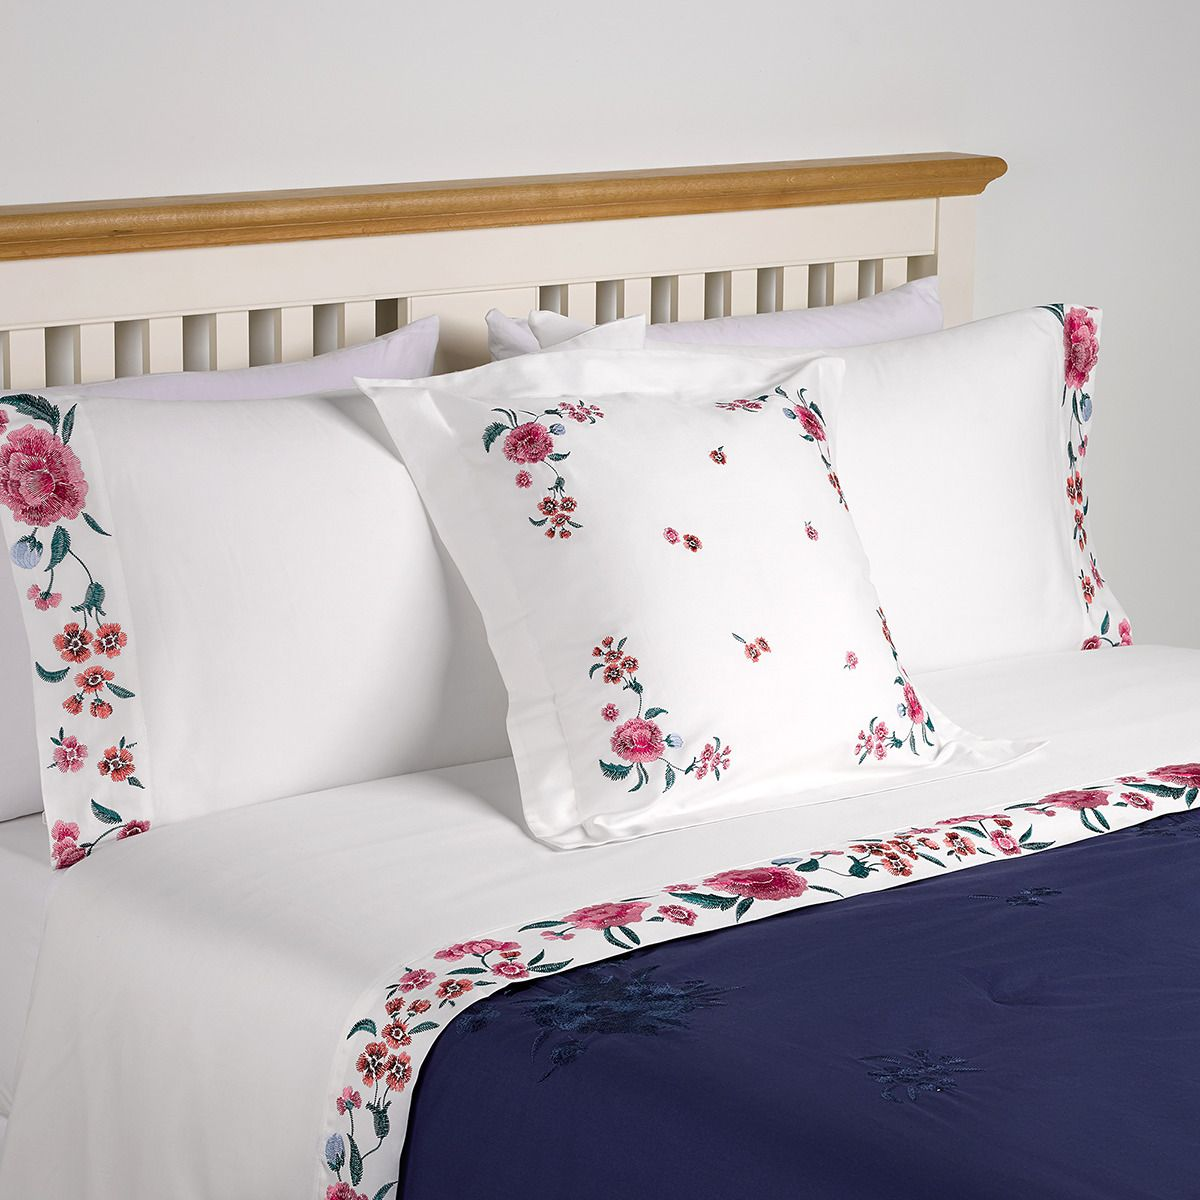 Funda Nordica One Direction El Corte Ingles.Pin By Magaposta On My Works Marianna Gagliardi Bed Pillows